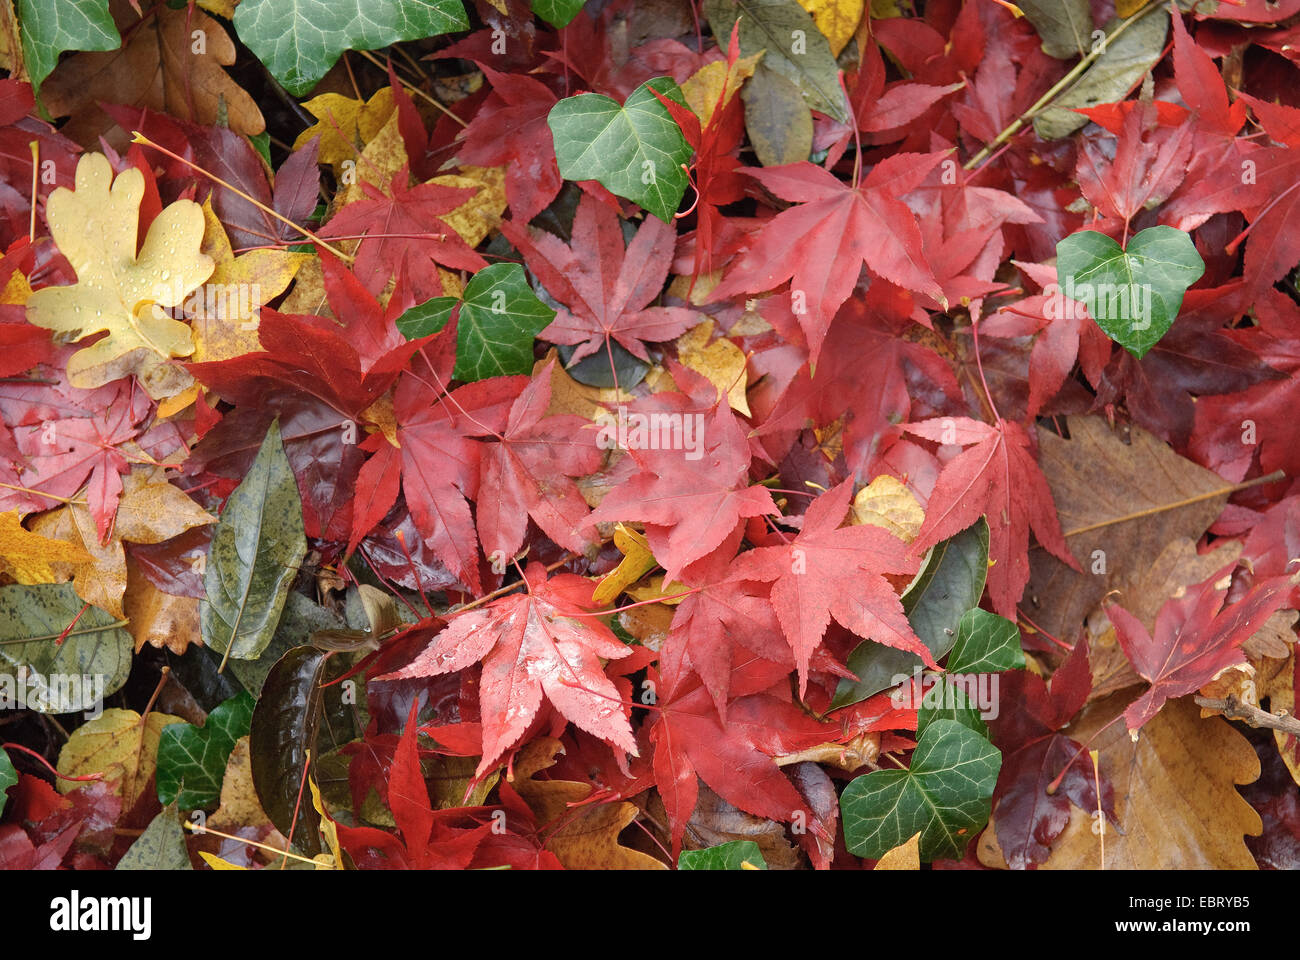 autumn leaves of maple and oak amongst ivy - Stock Image